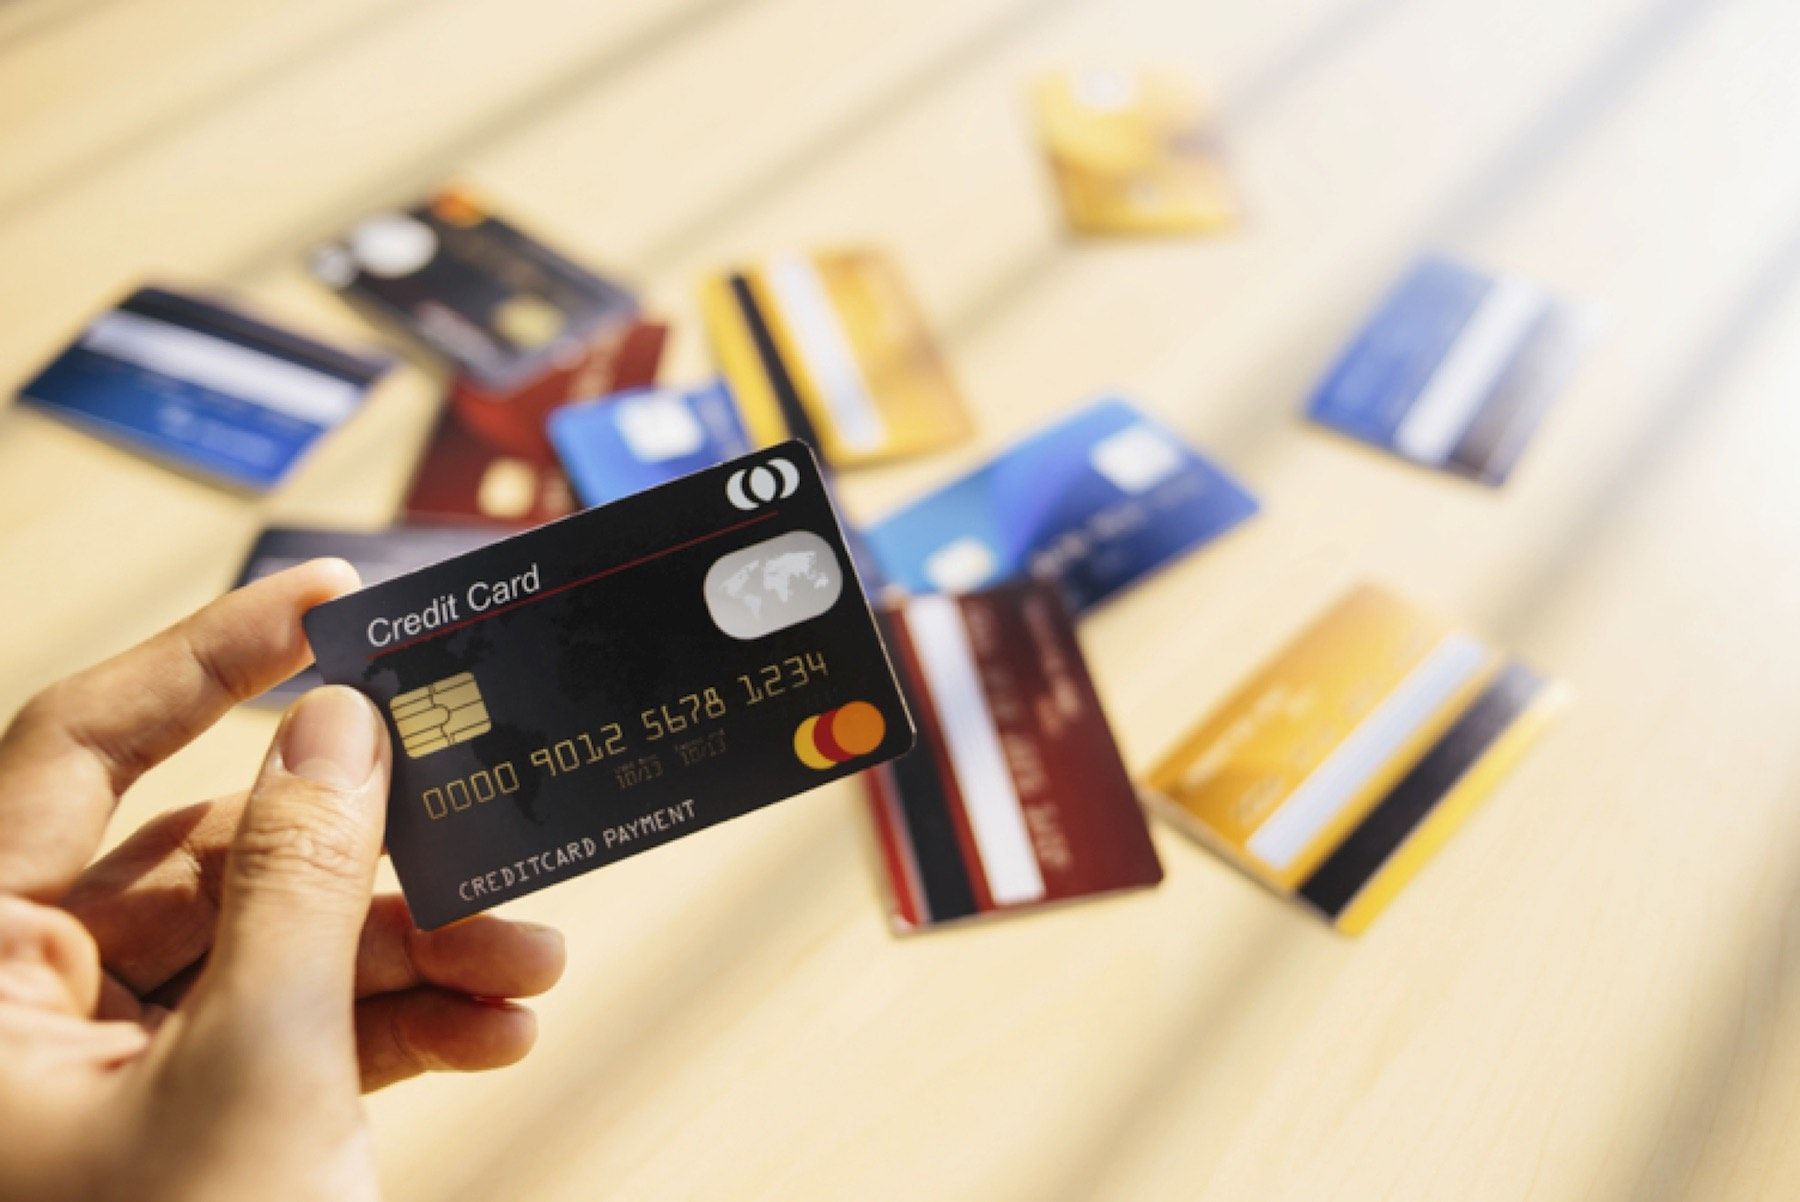 c4f01afb436999a06f9e5b00389f0991 - How To Get A First Credit Card For No Credit